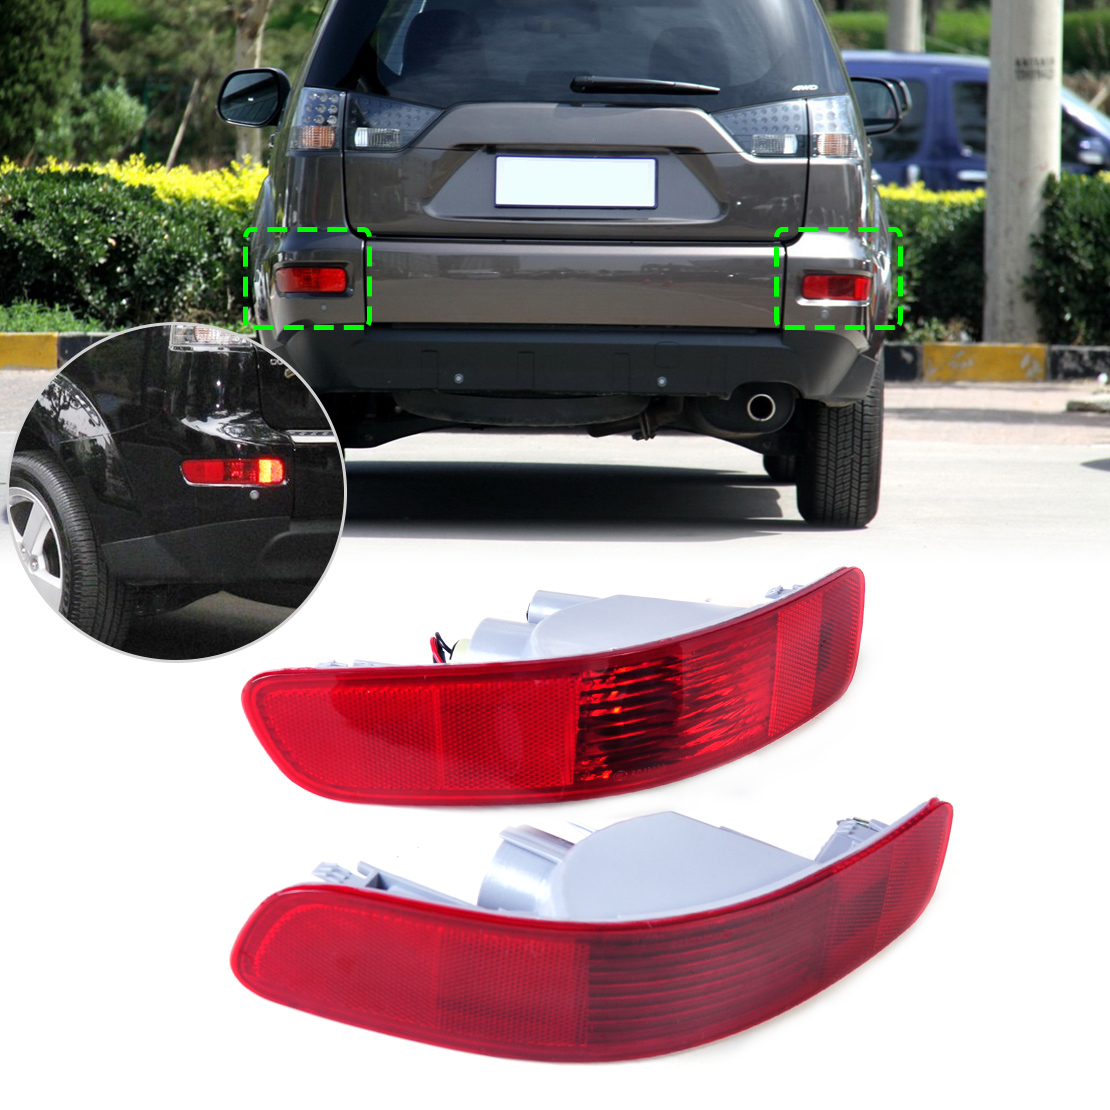 beler 2x Rear Right Left Tail Fog Light Lamp Reflector 8352A005 8337A015 for Mitsubishi Outlander 2007 2008 2009 2010 2011 2012 car rear trunk security shield cargo cover for mitsubishi outlander 2007 2008 2009 2010 2011 2012 high qualit auto accessories